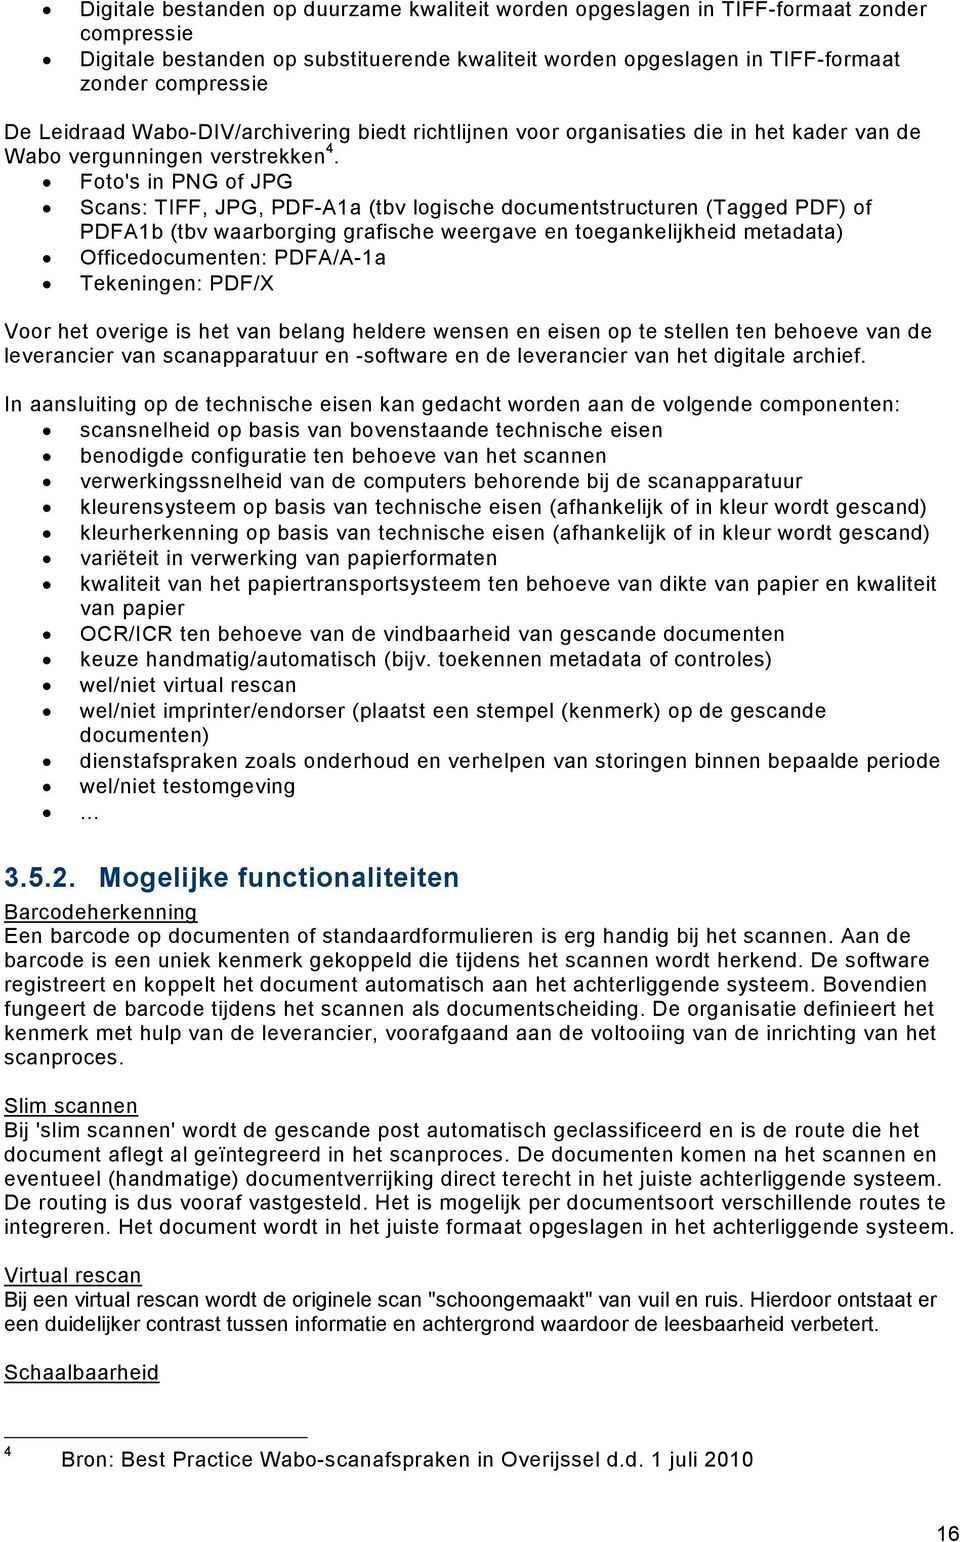 Foto's in PNG of JPG Scans: TIFF, JPG, PDF-A1a (tbv logische documentstructuren (Tagged PDF) of PDFA1b (tbv waarborging grafische weergave en toegankelijkheid metadata) Officedocumenten: PDFA/A-1a